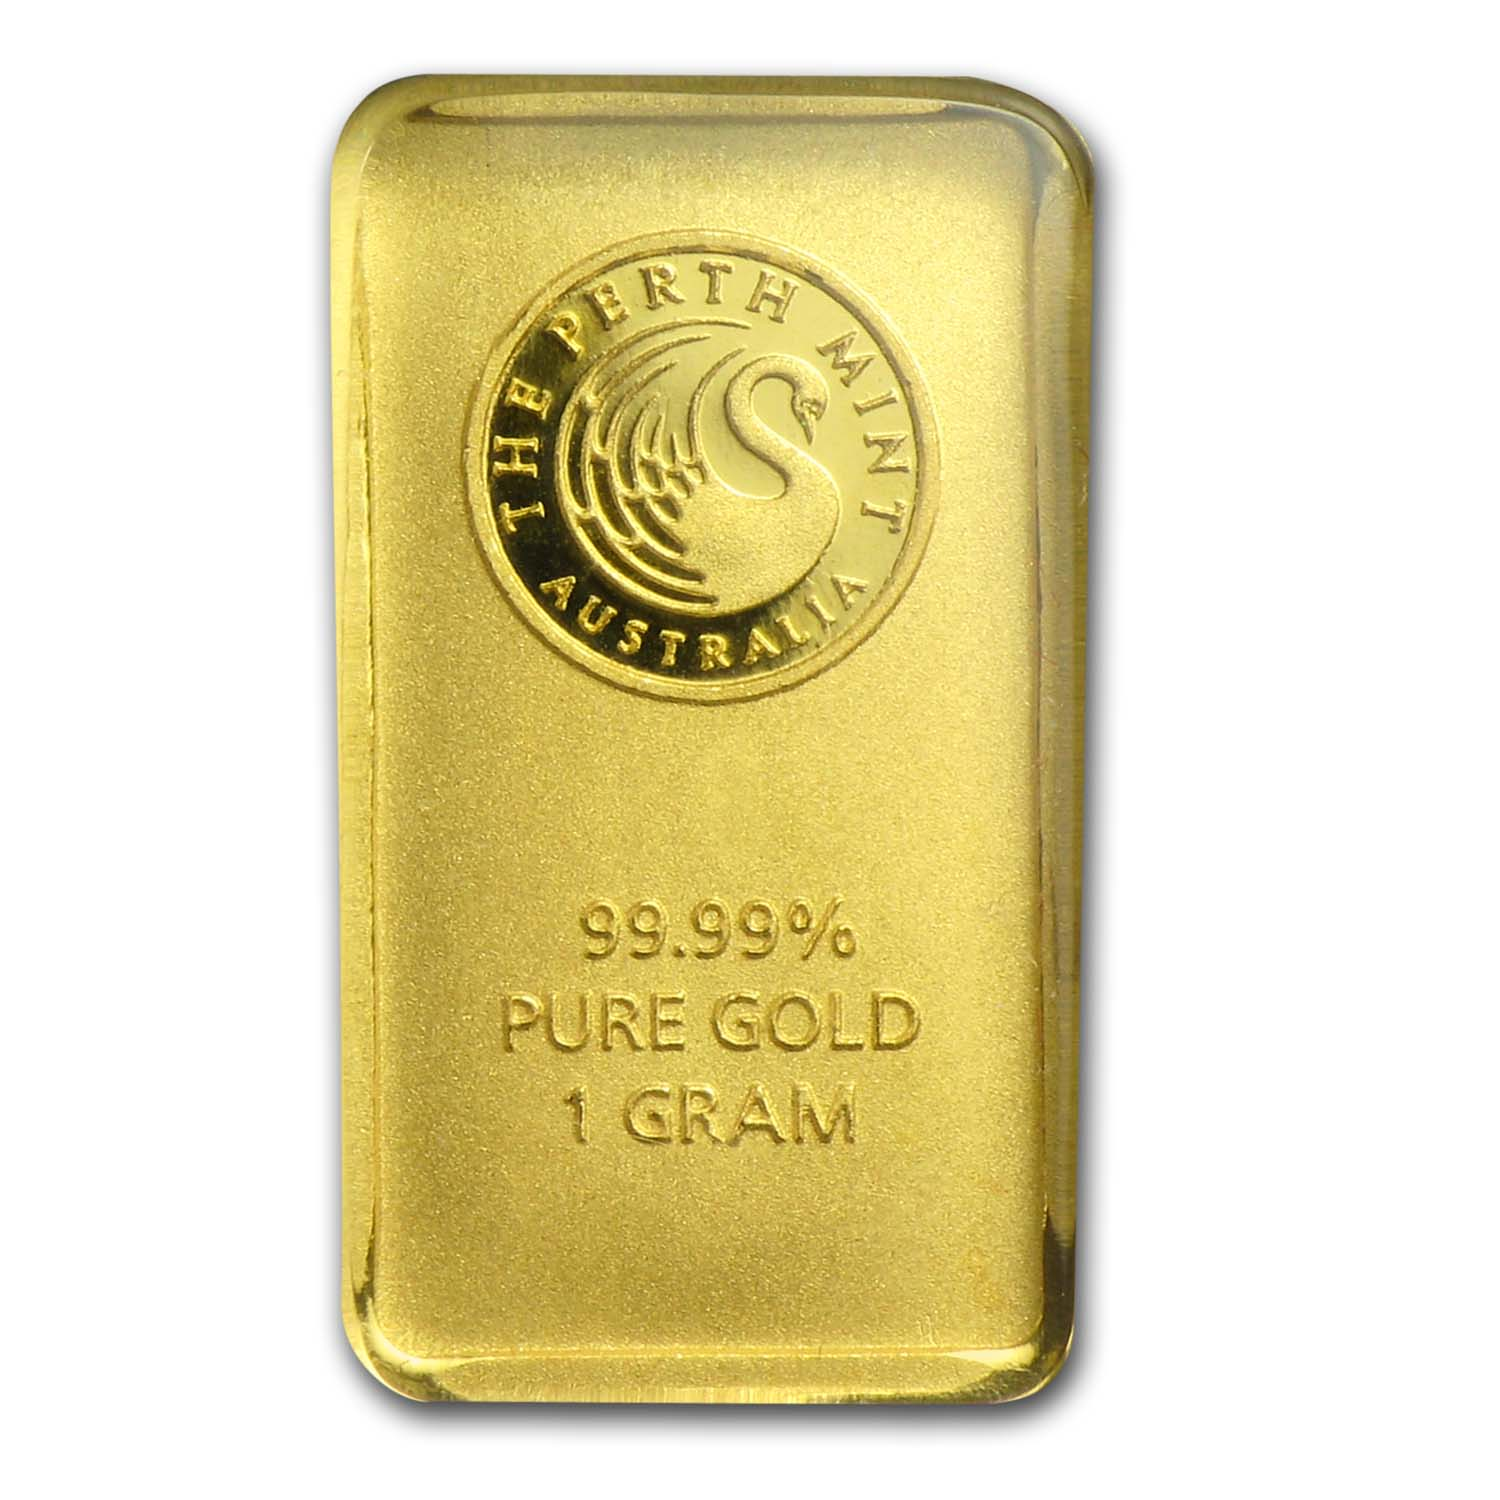 1 gram Gold Bar - Perth Mint (In Assay)